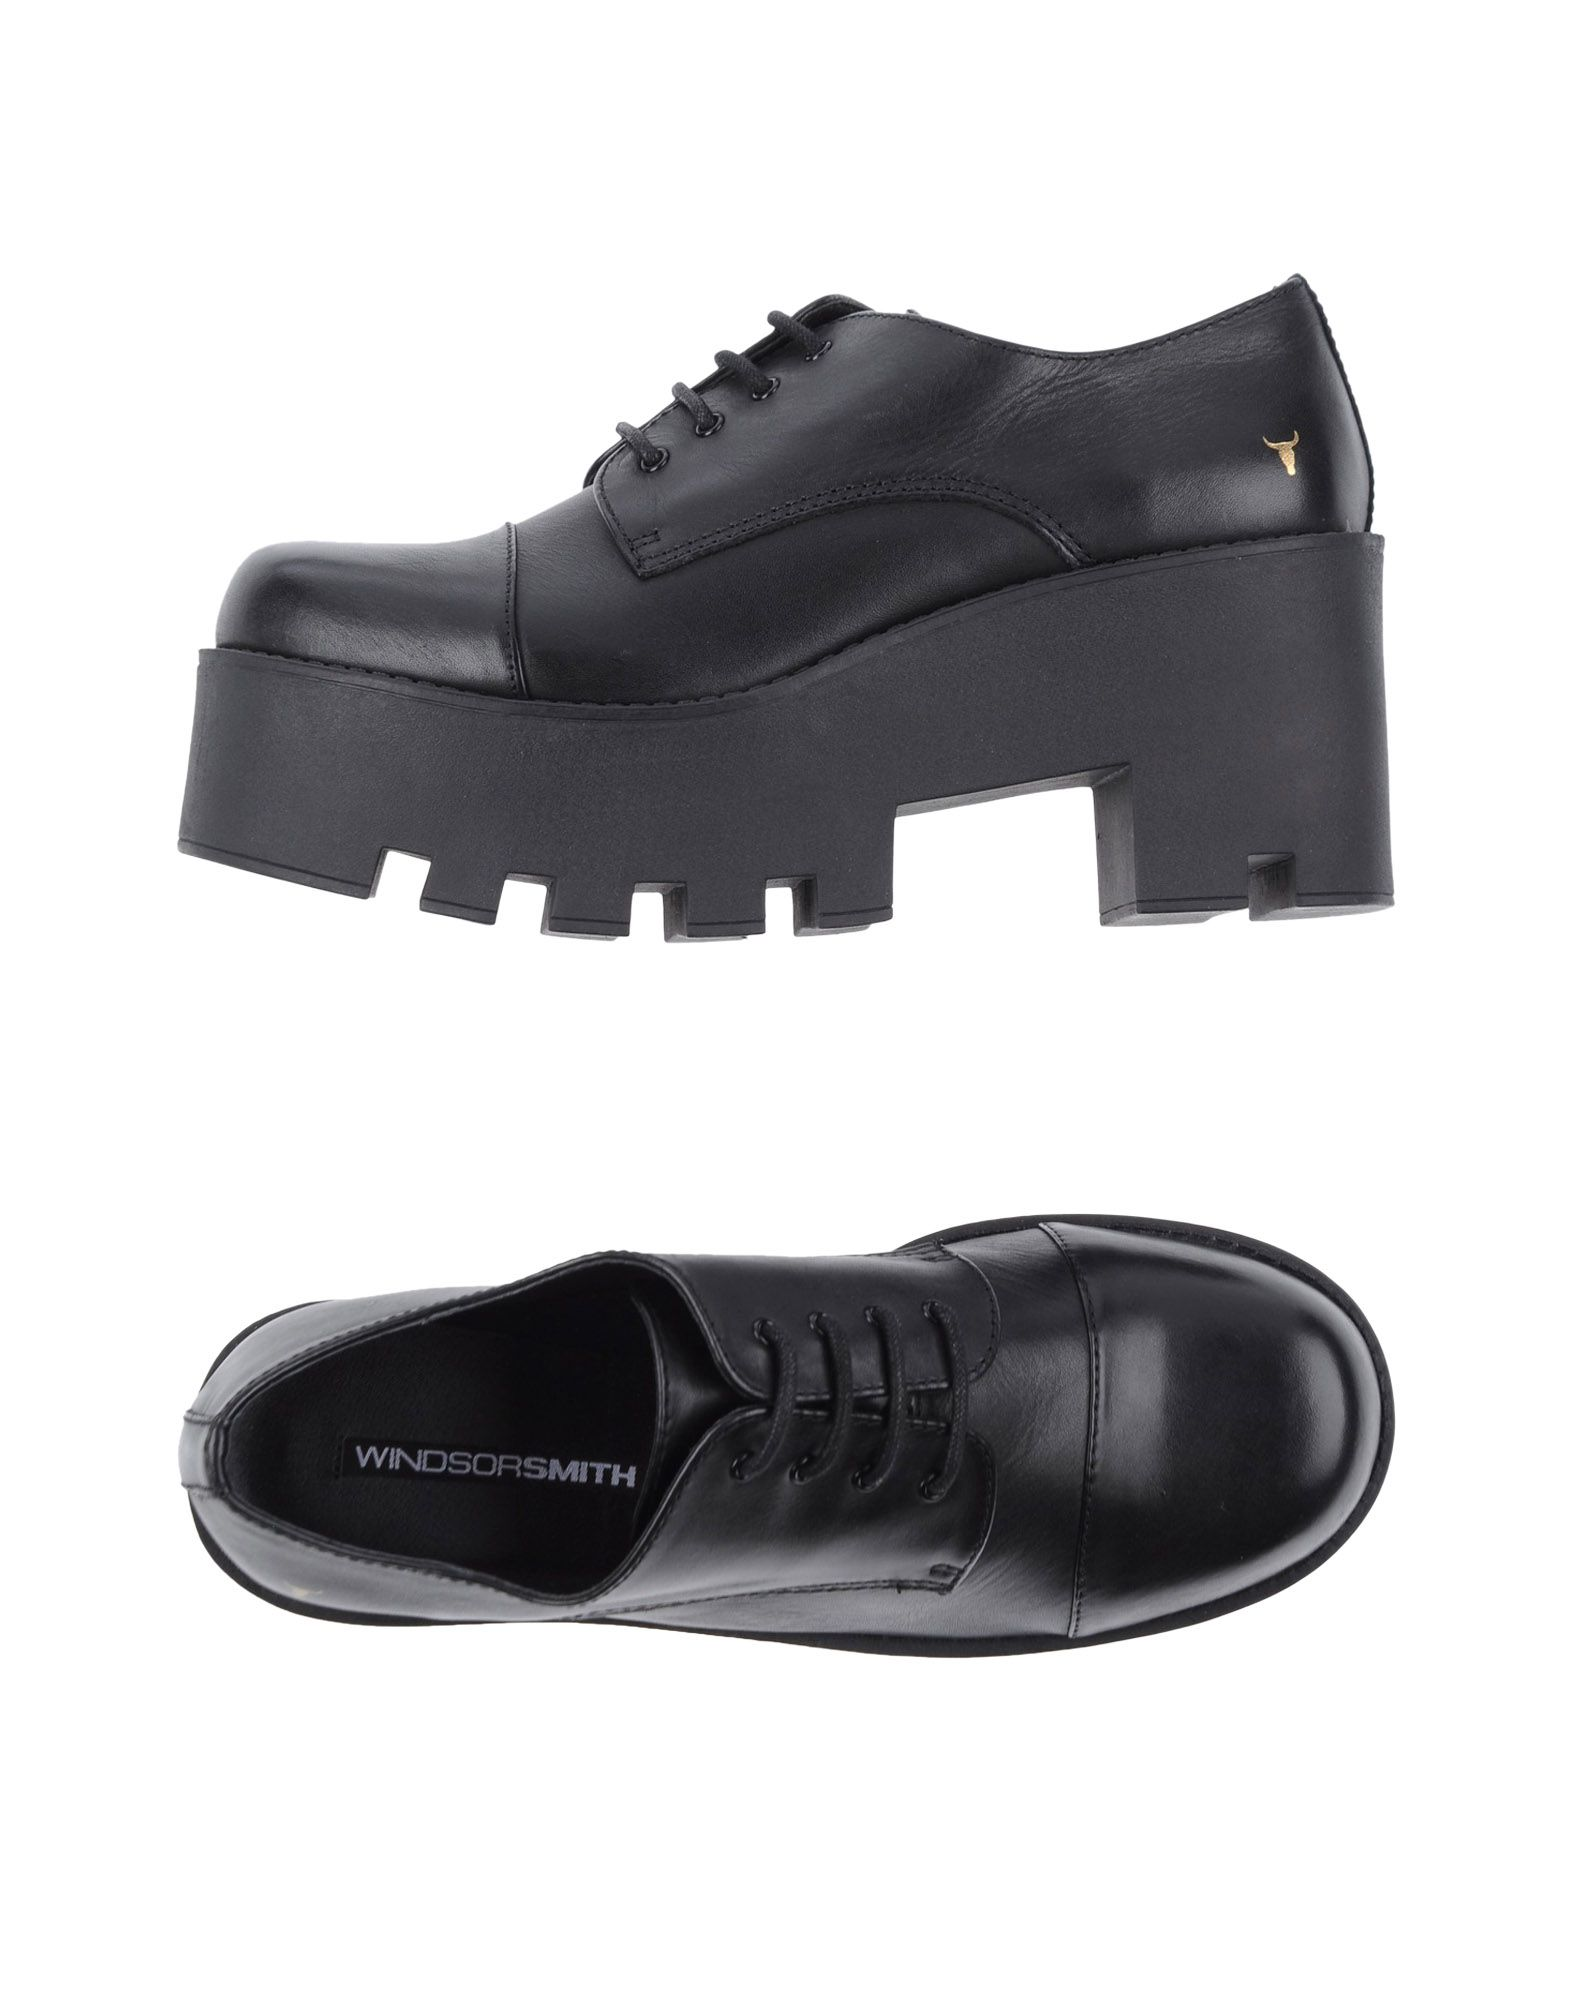 Chaussures À Lacets Windsor Smith Femme - Chaussures À Lacets Windsor Smith sur